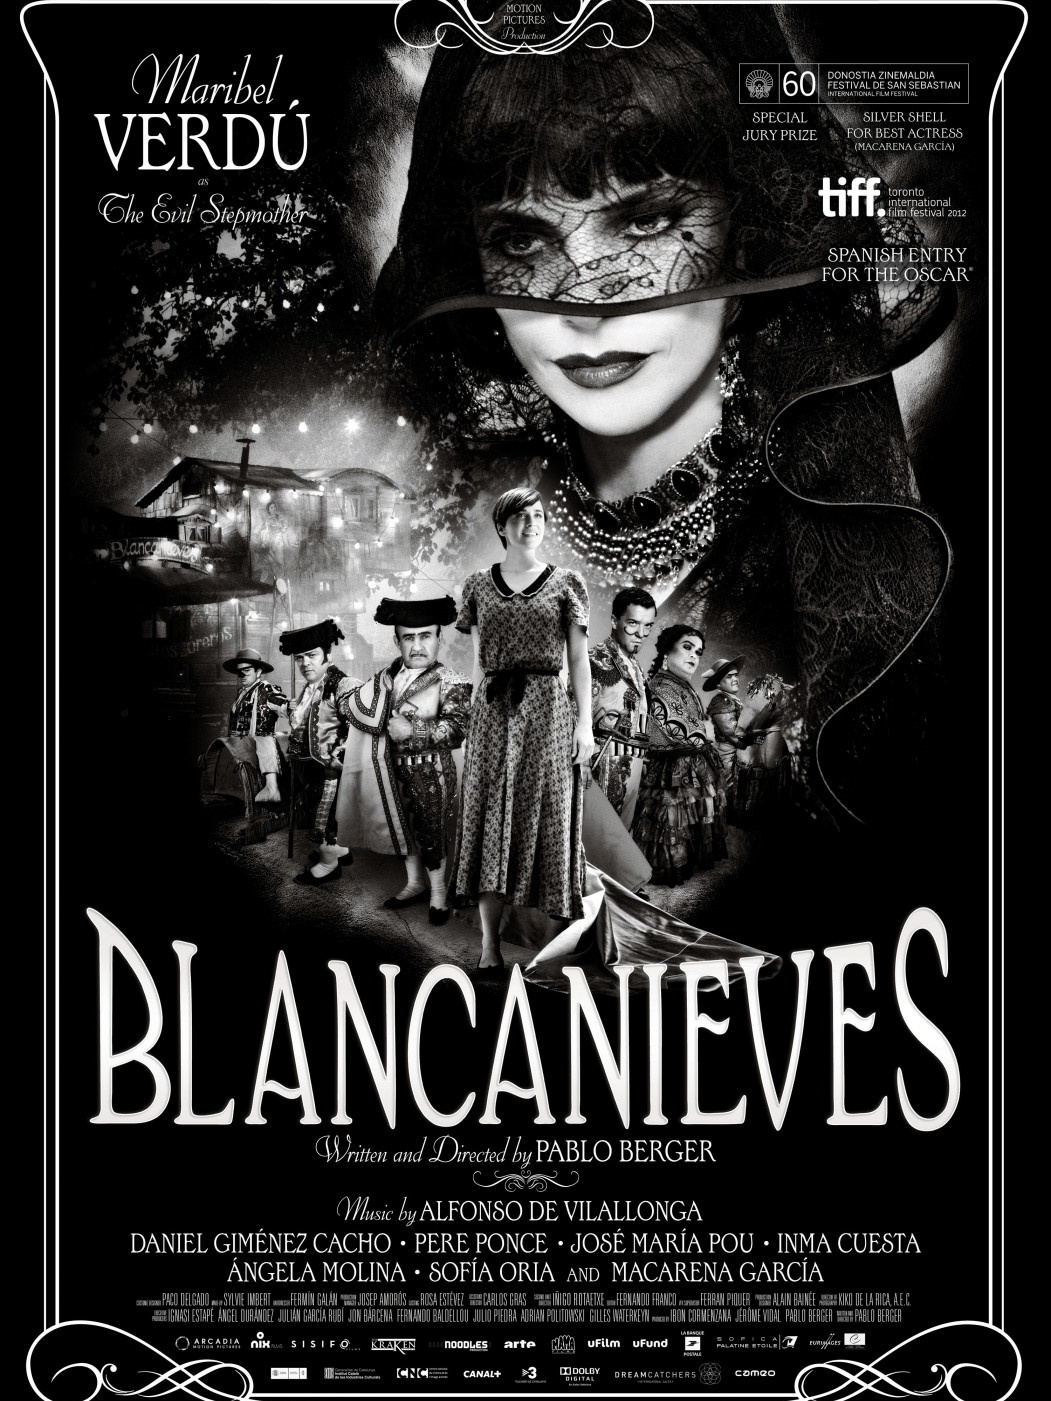 Battelle Film Club - Blancanieves At Battelle Auditorium Richland, Washington